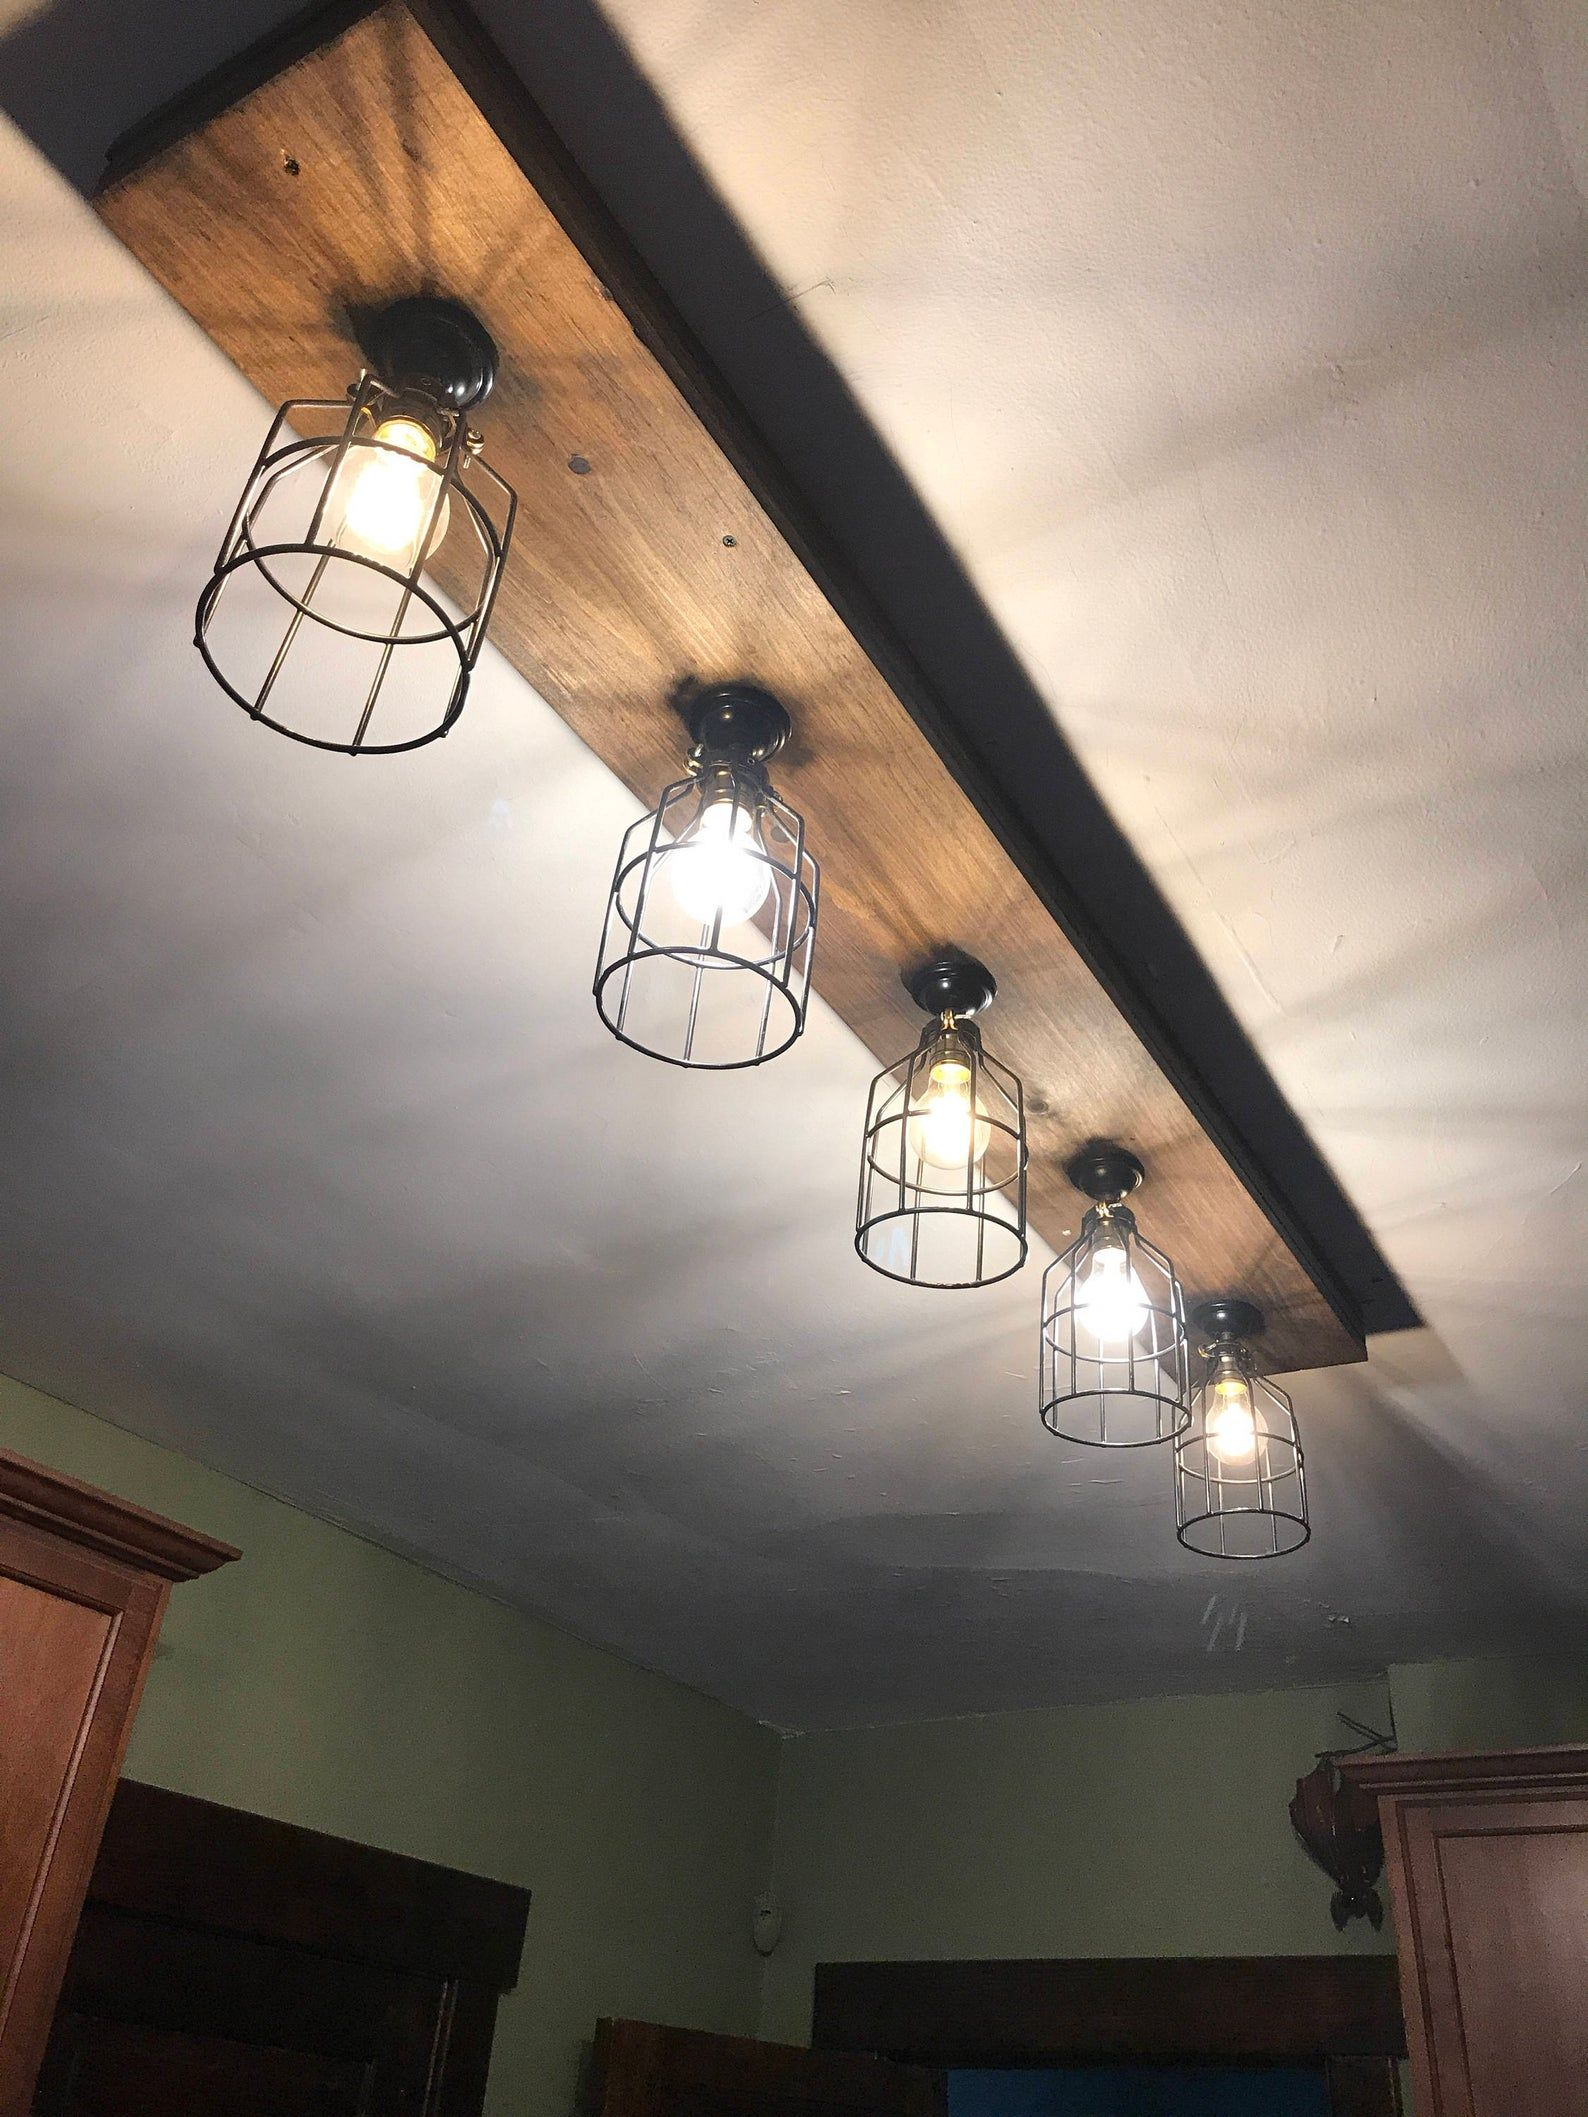 Rustic Farmhouse Beam Light 3 4 5 Or 6 Light Fixtures Up To 6 Feet Long Rustic Track Lighting Wood Beam Light Light Bulbs Included Rustic Light Fixtures Rustic Track Lighting Rustic Kitchen Lighting